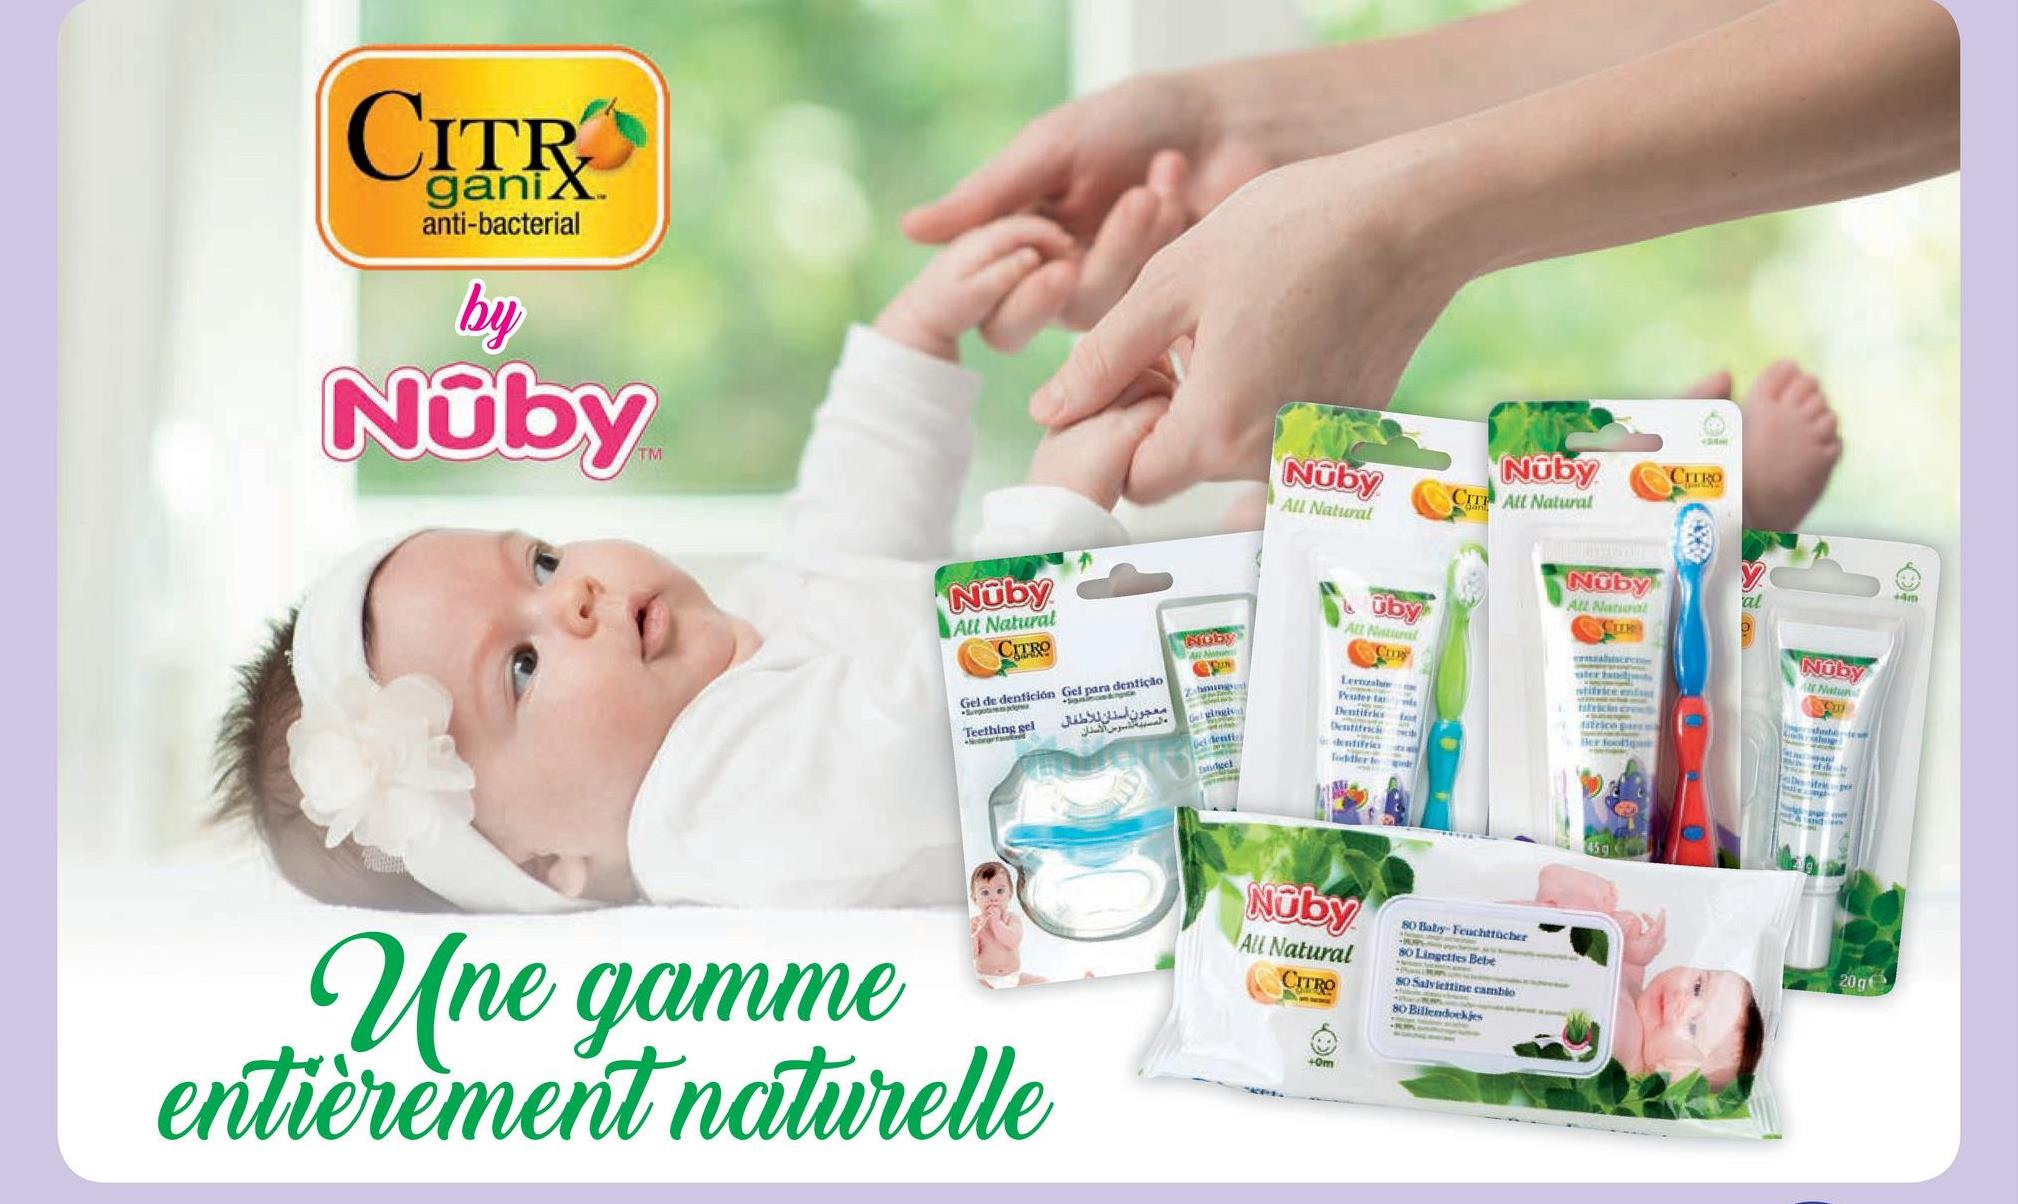 CITR anti-bacterial by Noby Noby CITRO NỮby All Natural CIT All Natural Noby A Nana Uby Nuby All Natural CERO Nuby Nadu Gel de dentición Gel para dentição juego . Gels Teething sel NCS 80 Batry. Feuchtrache All Natural 80 Lingette Bebe CITRO So Saltine cambio 8 Billendoekjes Une gamme entièrement naturelle